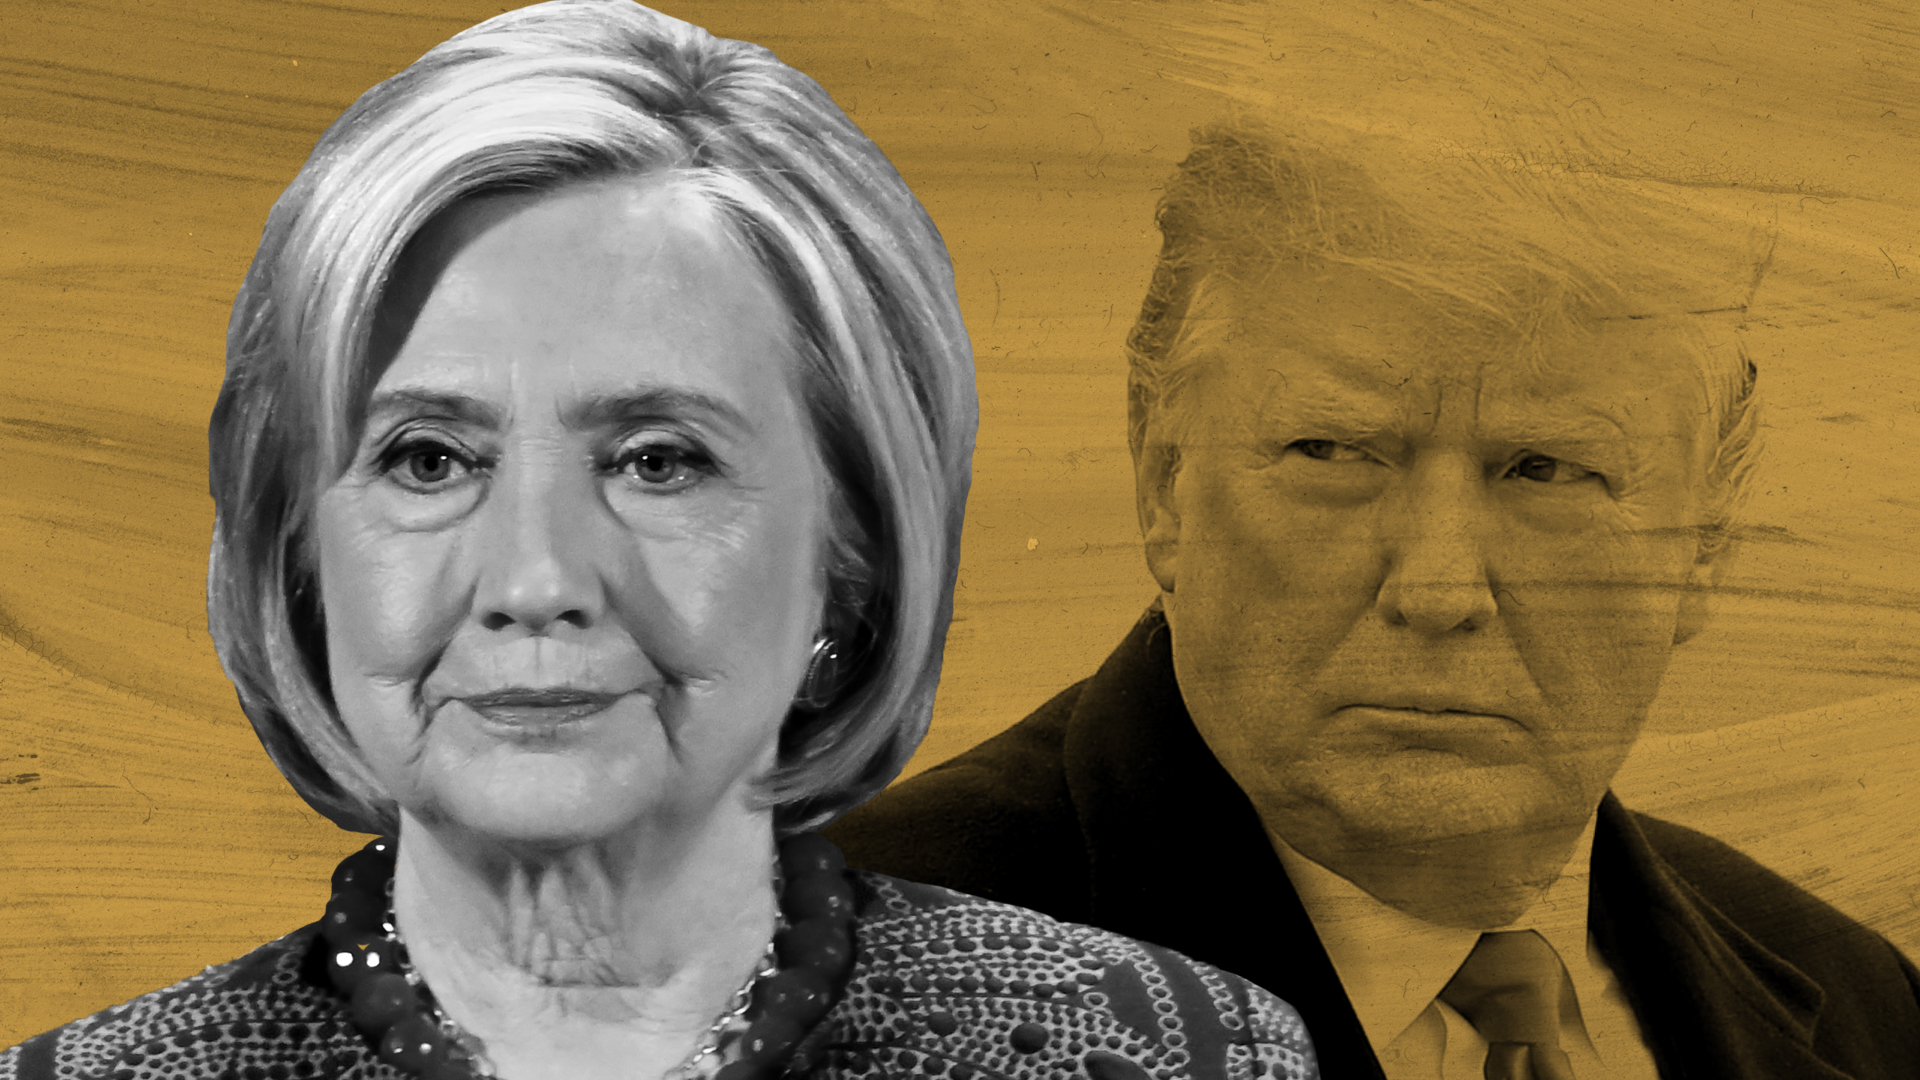 Hillary Clinton: Mueller documented a serious crime against all Americans. Here's how to respond.